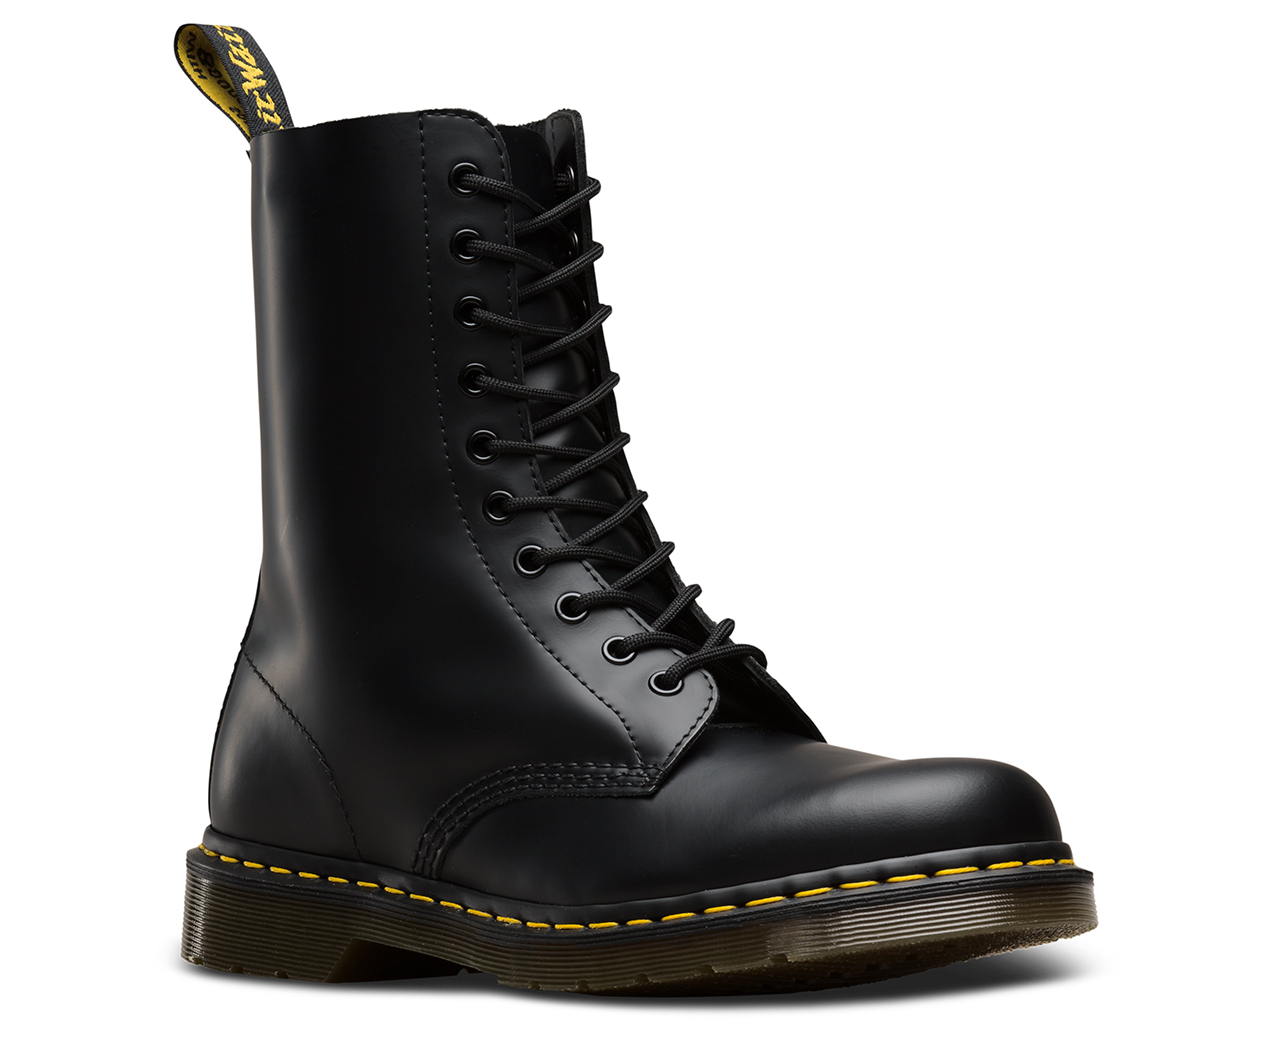 1490 1490 Officiele SmoothAw18 DrMartens Site Officiele Site DrMartens SmoothAw18 1490 dQrsCtxh